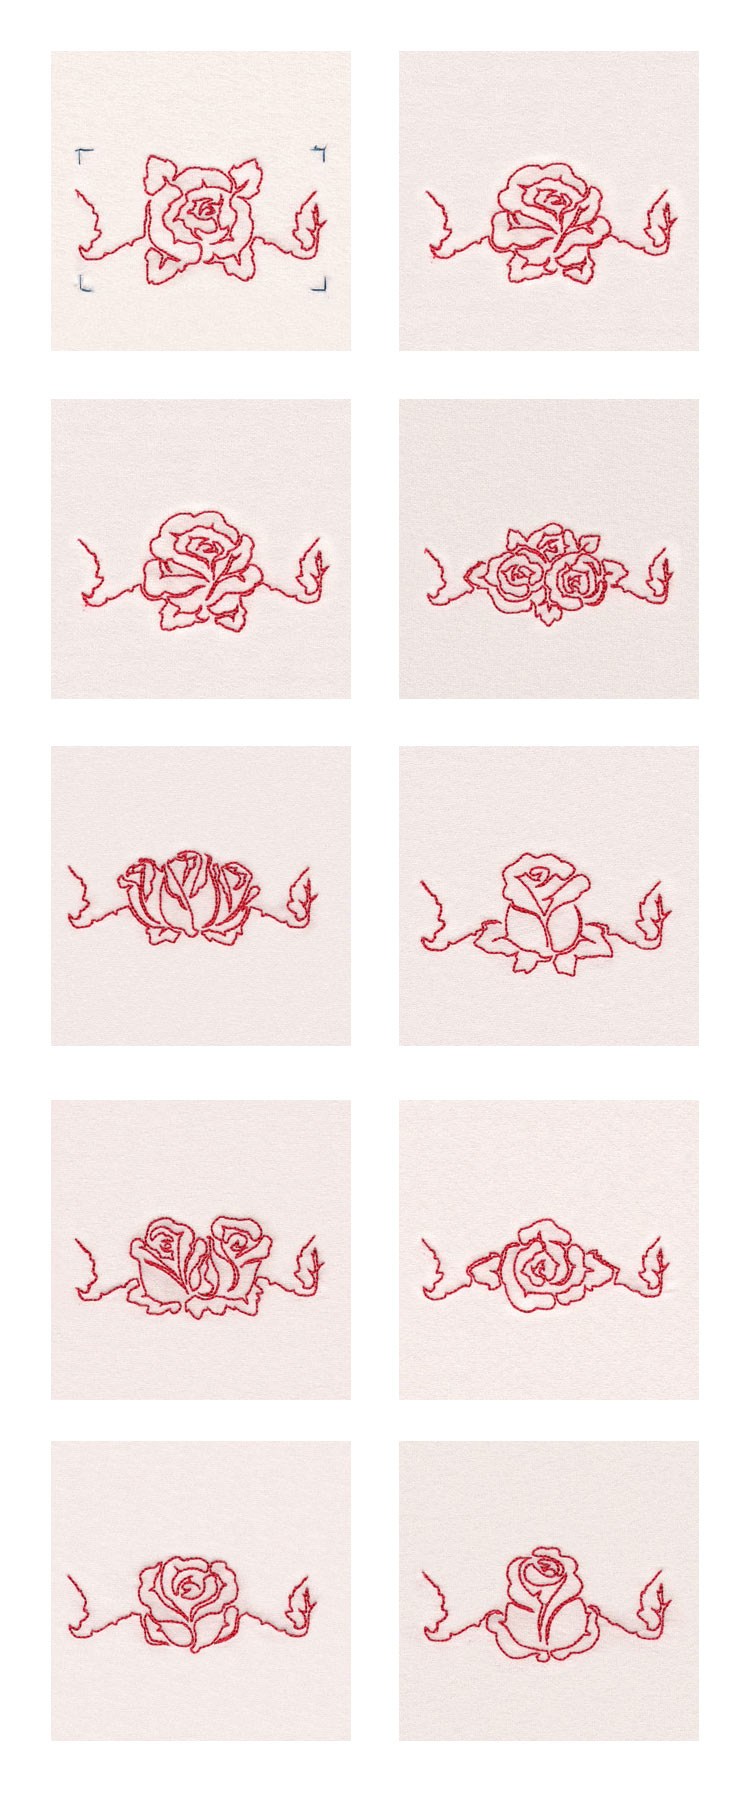 Lineart Roses Borders Embroidery Machine Design Details